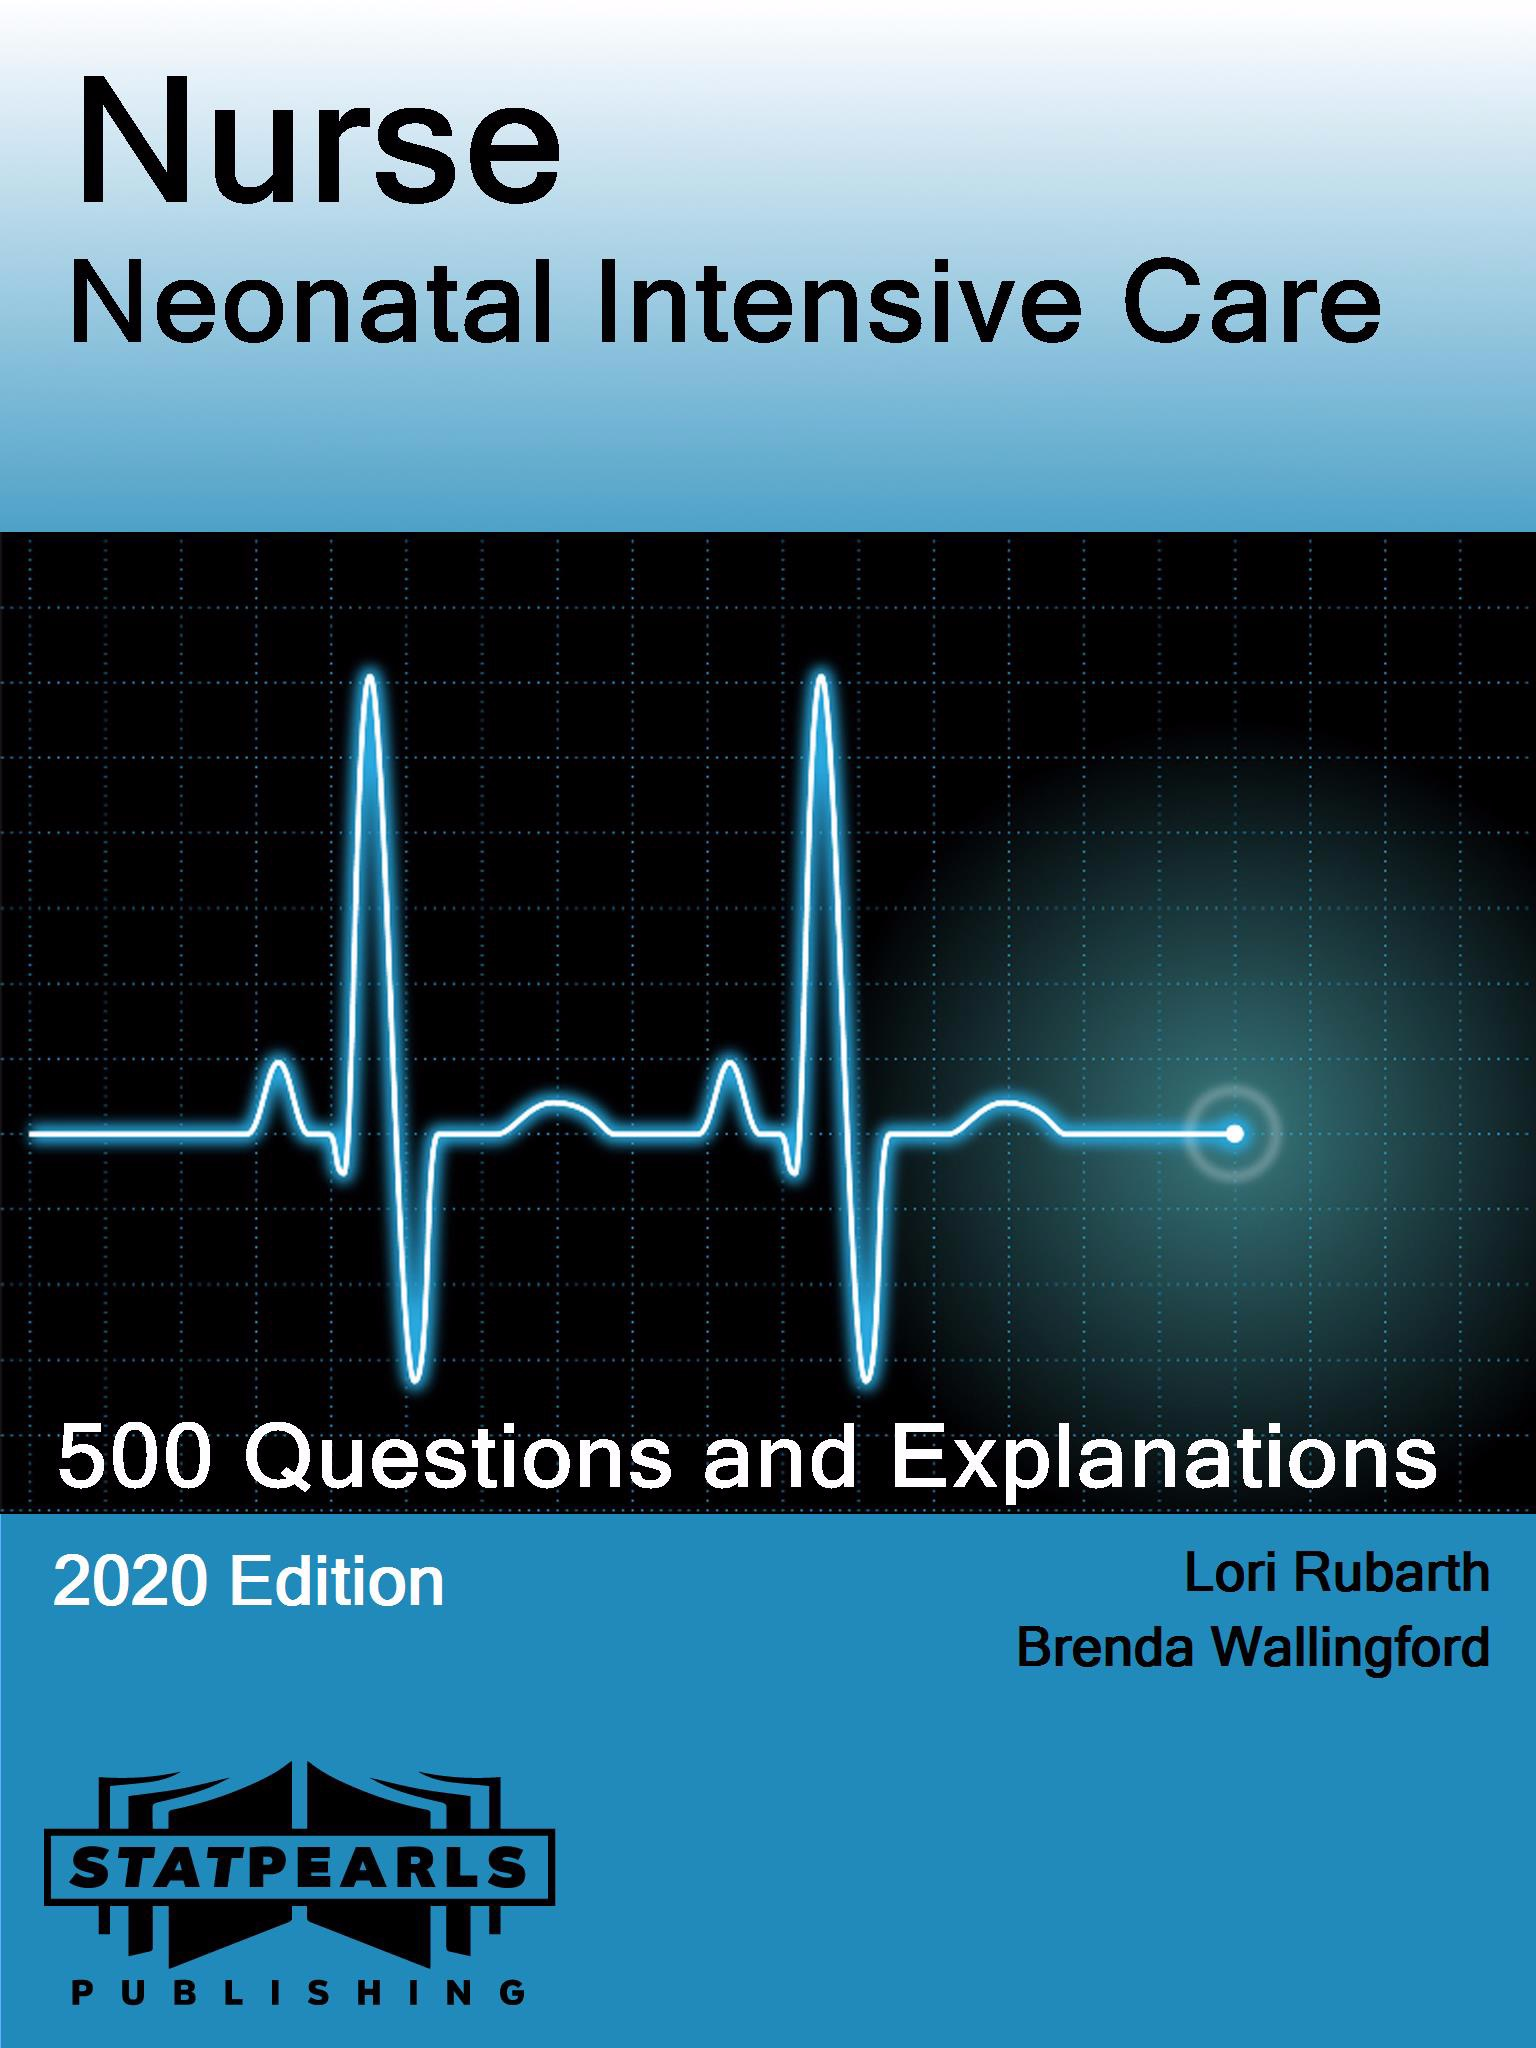 Nurse Neonatal Intensive Care